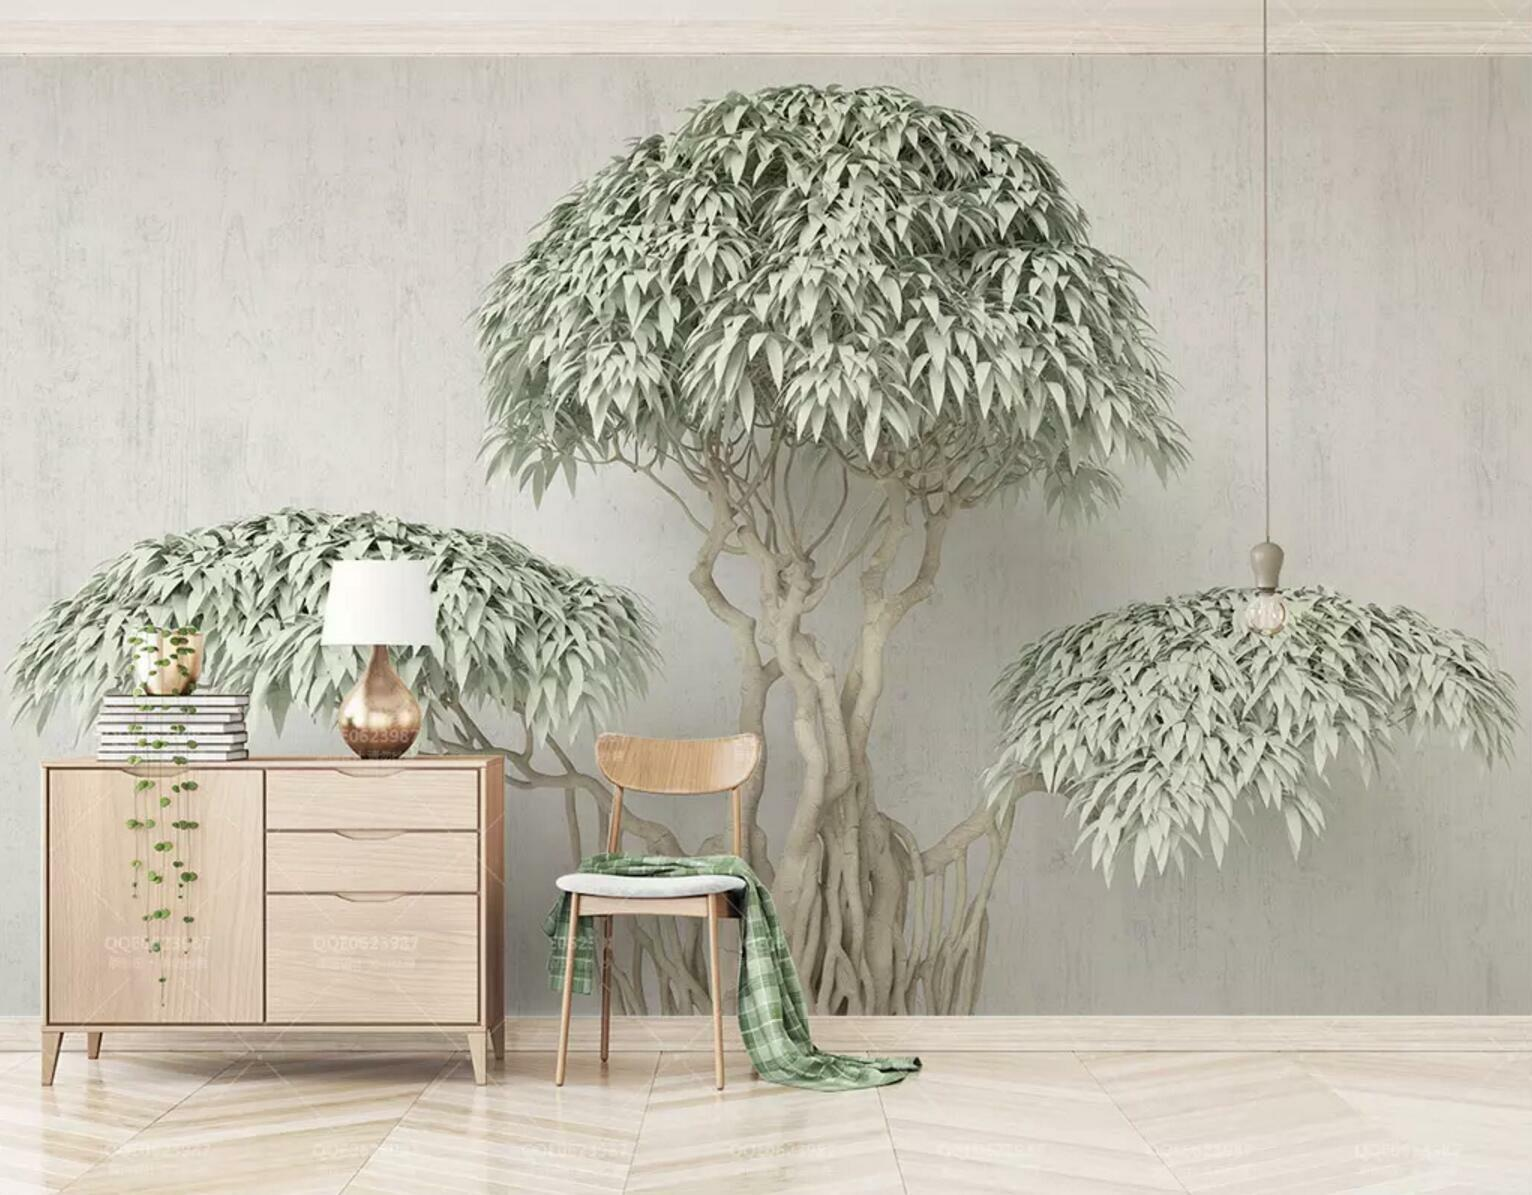 3D Grün Leaf Old Tree 56 Wall Paper Exclusive MXY Wallpaper Mural Decal Indoor